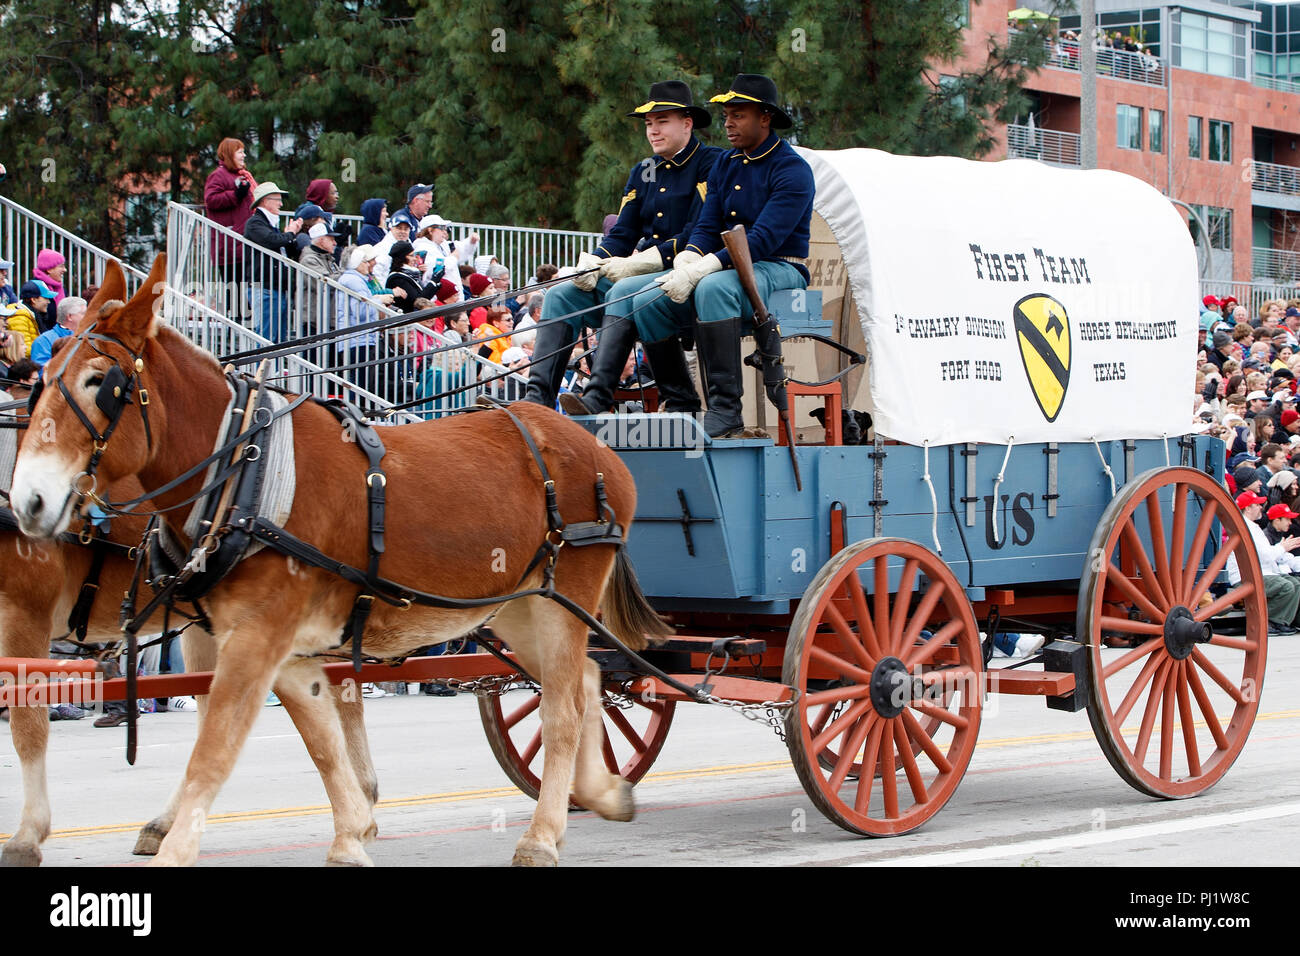 Horse drawn wagon of the United States Army, 1st Cavalry, from Fort Hood, Texas, 2017 Tournament of Roses Parade, Rose Parade, Pasadena, California, United States of America - Stock Image